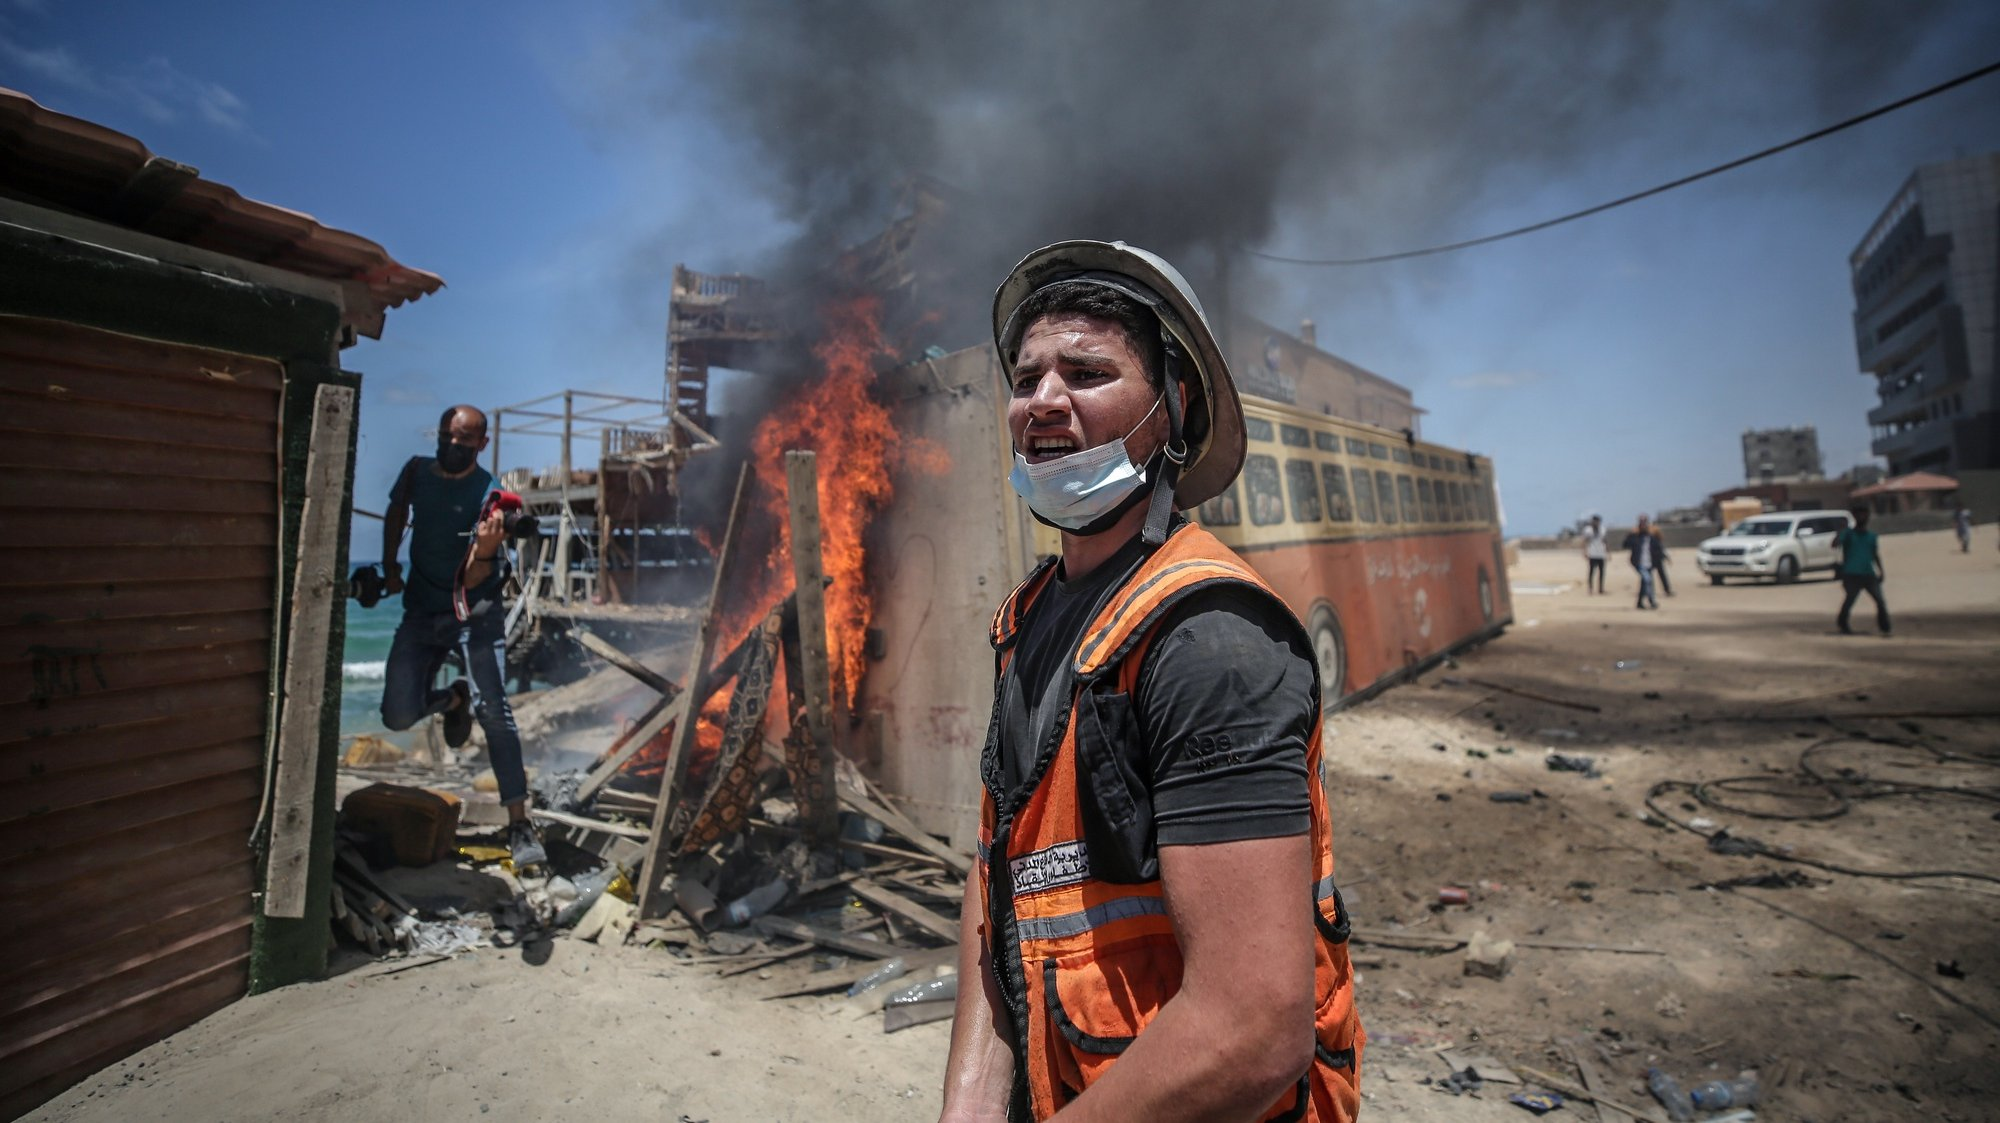 epa09206953 A Palestinian Civil Defense man works at the site of Israeli strikes in Gaza City, 17 May 2021. Three Palestinians were reportedly killed after Israeli air strikes. In response to days of violent confrontations between Israeli security forces and Palestinians in Jerusalem, various Palestinian militant factions in Gaza launched rocket attacks since 10 May that killed at least ten Israelis to date. According to the Palestinian Ministry of Health, at least 198 Palestinians, including 58 children, were killed in the recent retaliatory Israeli airstrikes.  EPA/MOHAMMED SABER